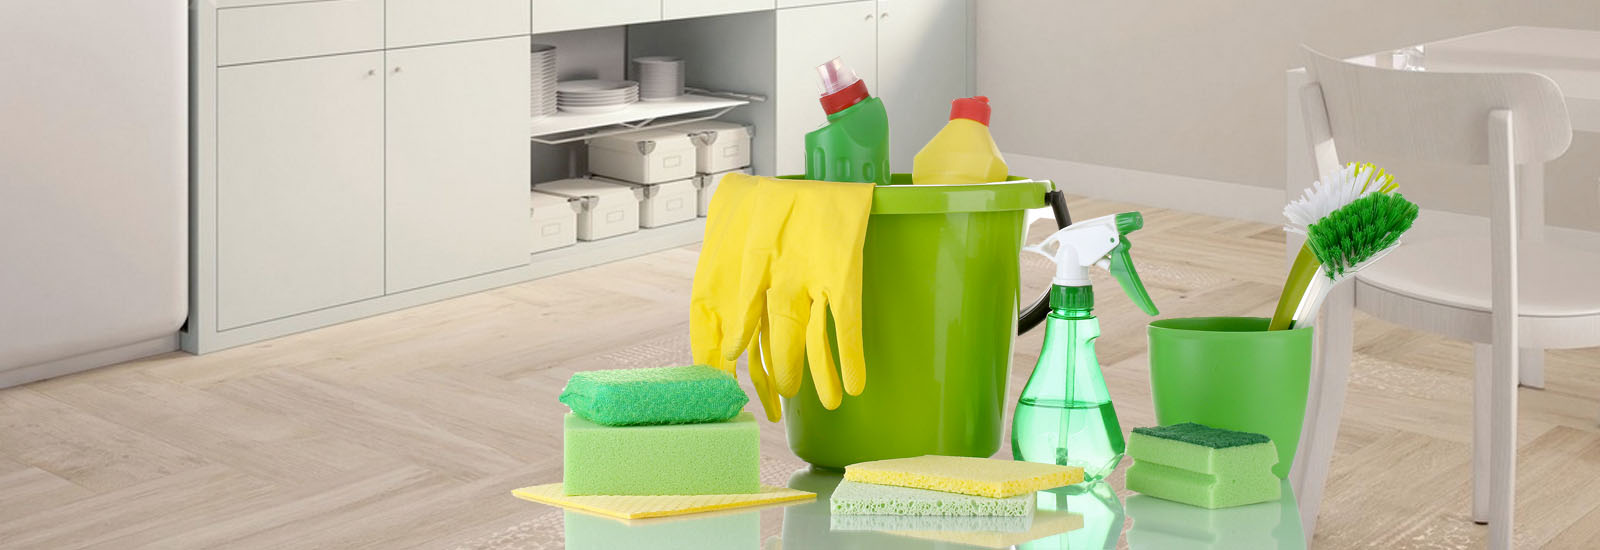 Cleaning Services For Homes Offices And Industrial Facilities